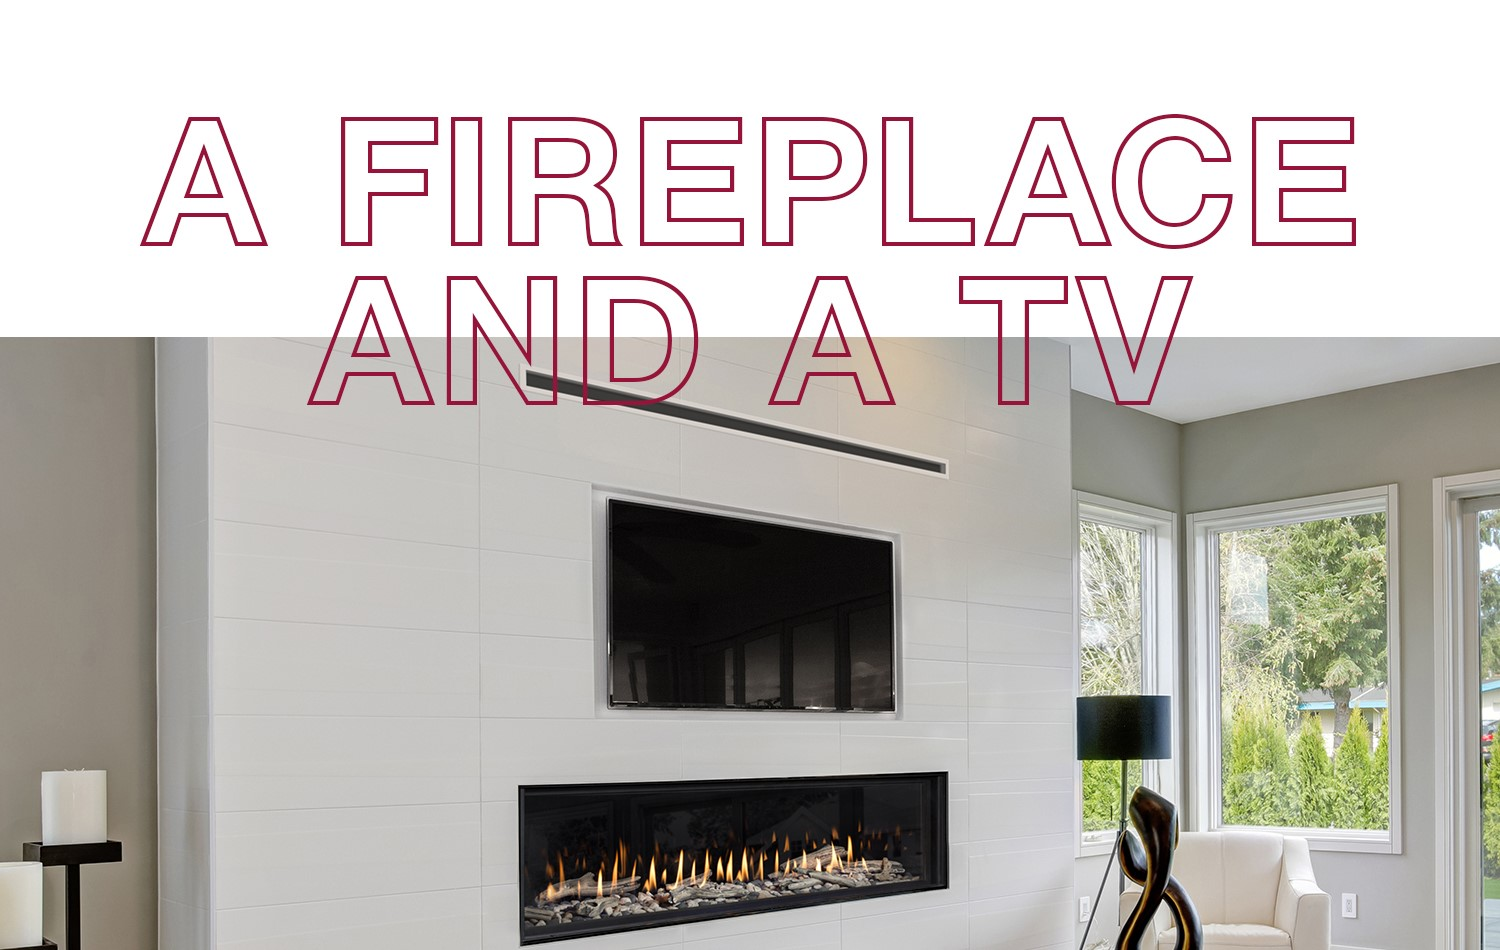 A FIREPLACE AND A TV